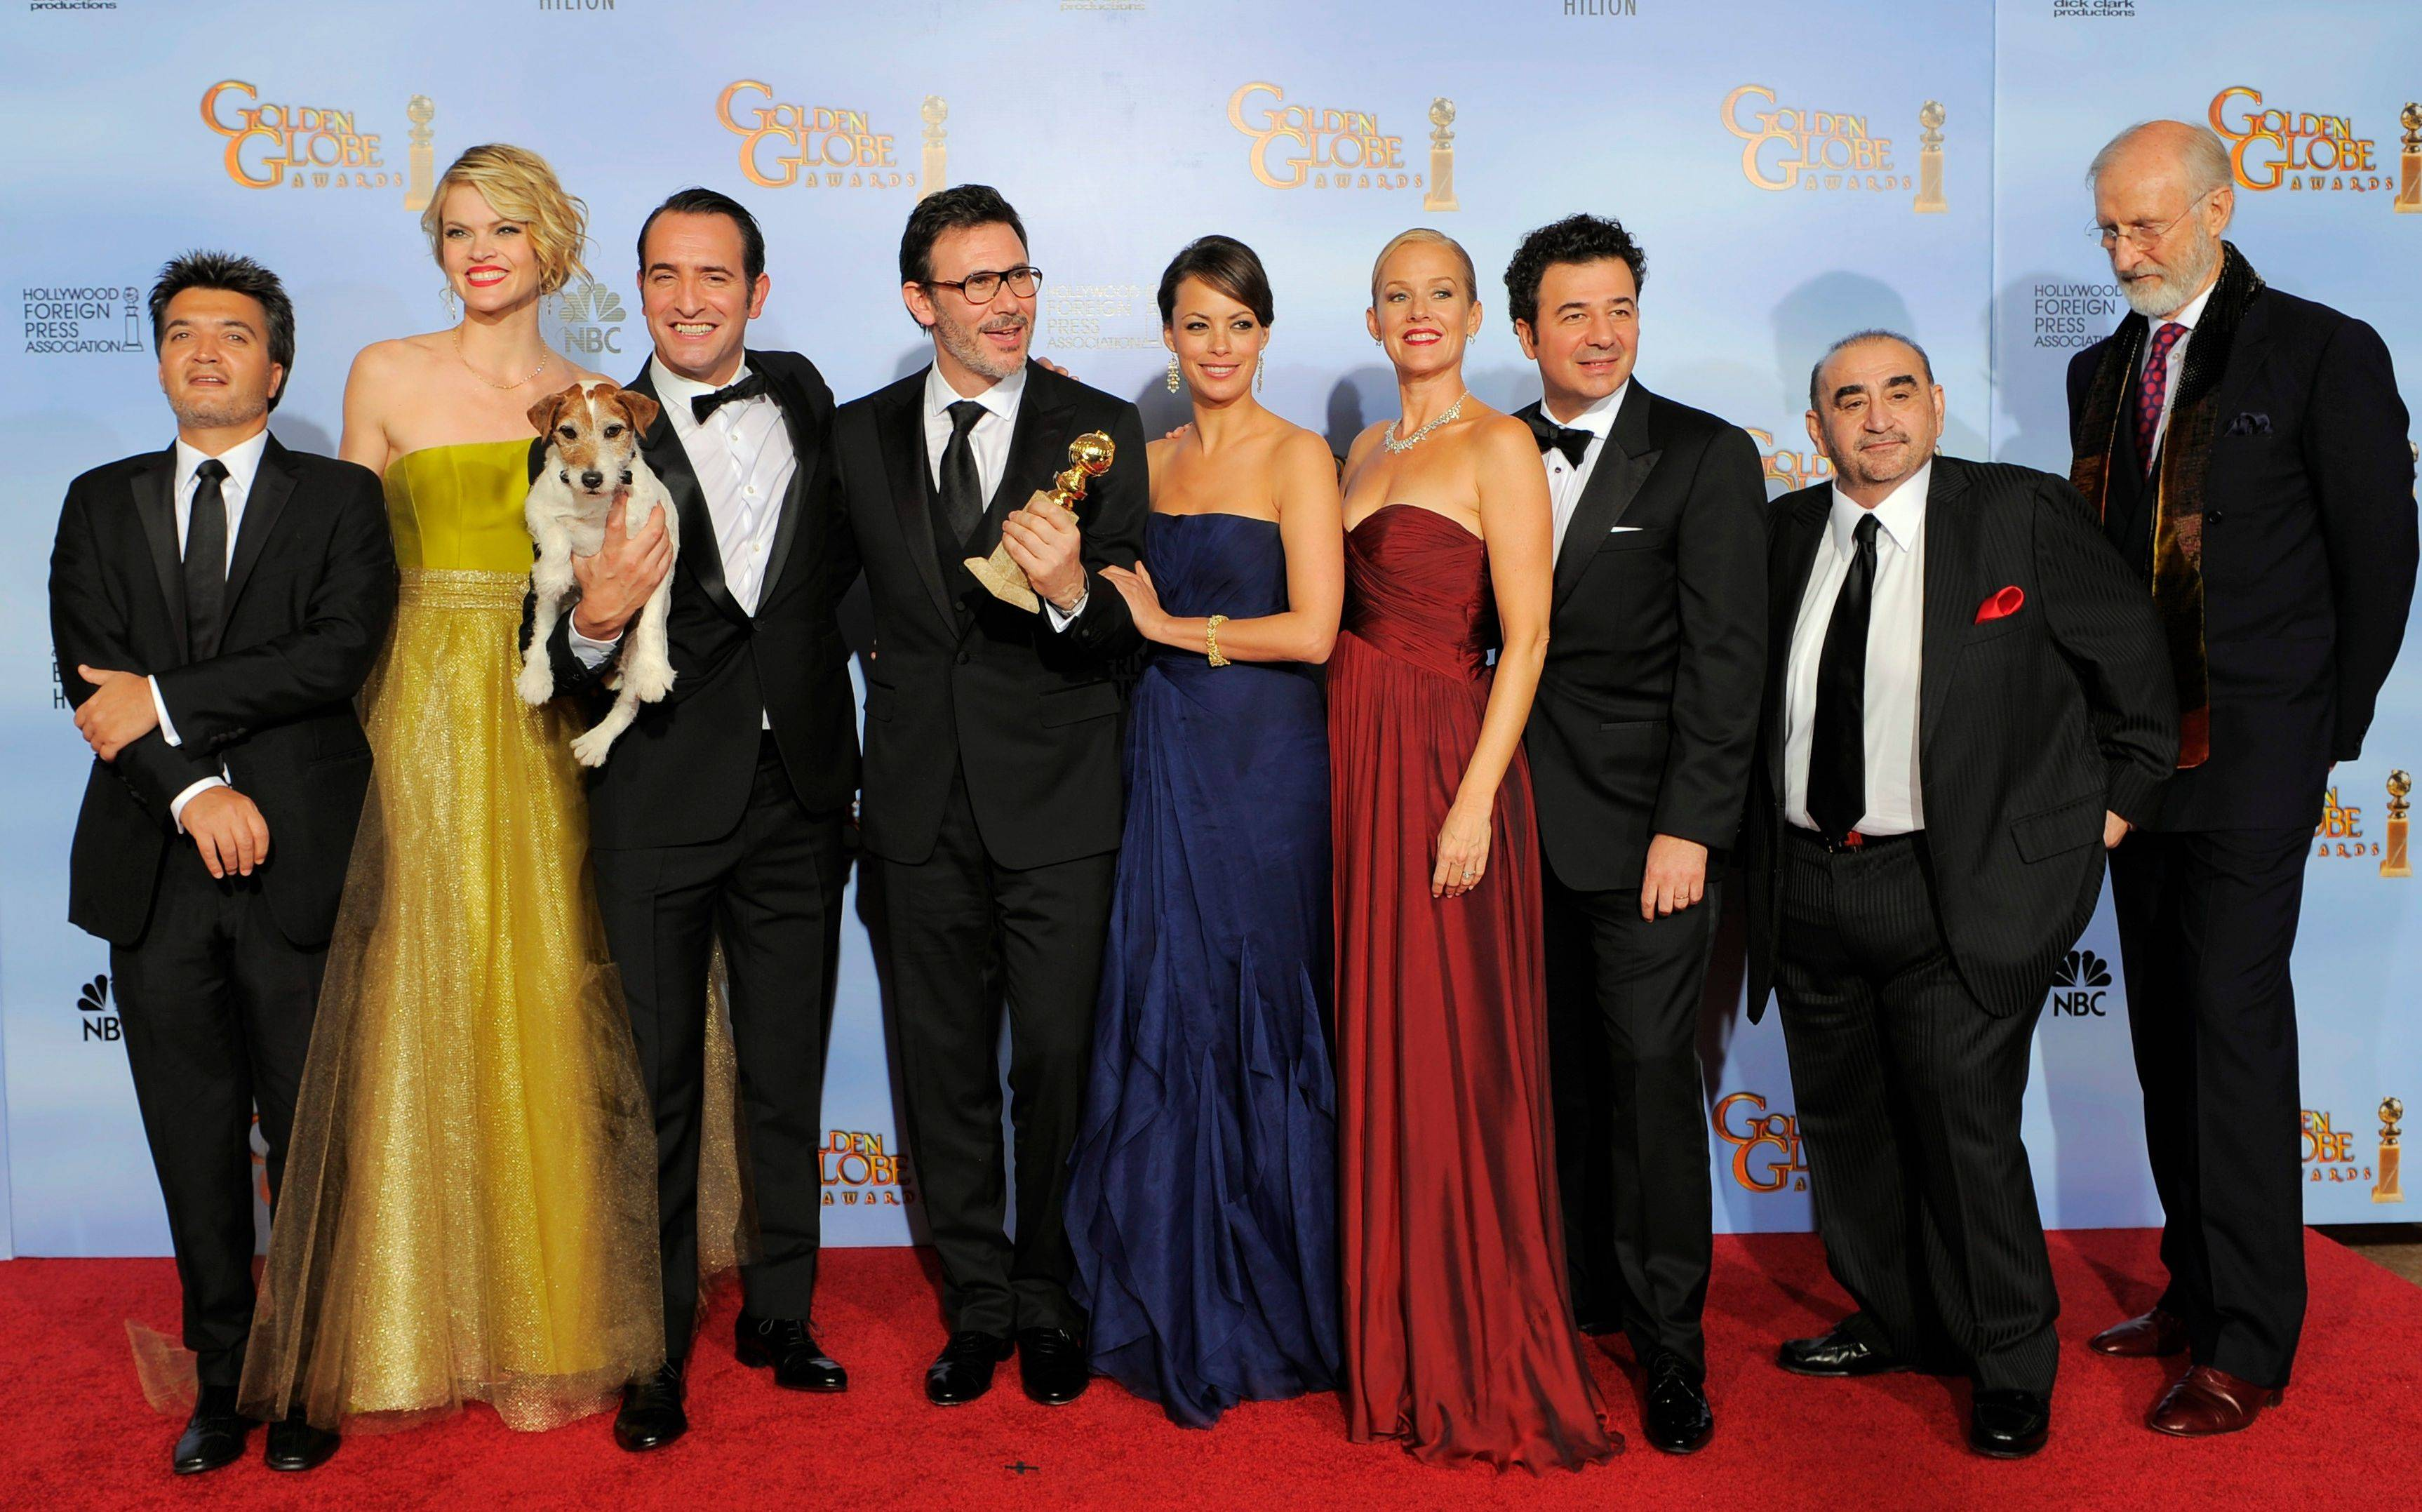 "The cast and crew of the film ""The Artist"" pose backstage Sunday with the award for Best Motion Picture - Comedy or Musical during the 69th Annual Golden Globe Awards. From left, Thomas Langmann, Missy Pyle, Jean Dujardin, Michel Hazanavicius, Berenice Bejo, Penelope Ann Miller, Ludovic Bource, Ken Davitian and James Cromwell."